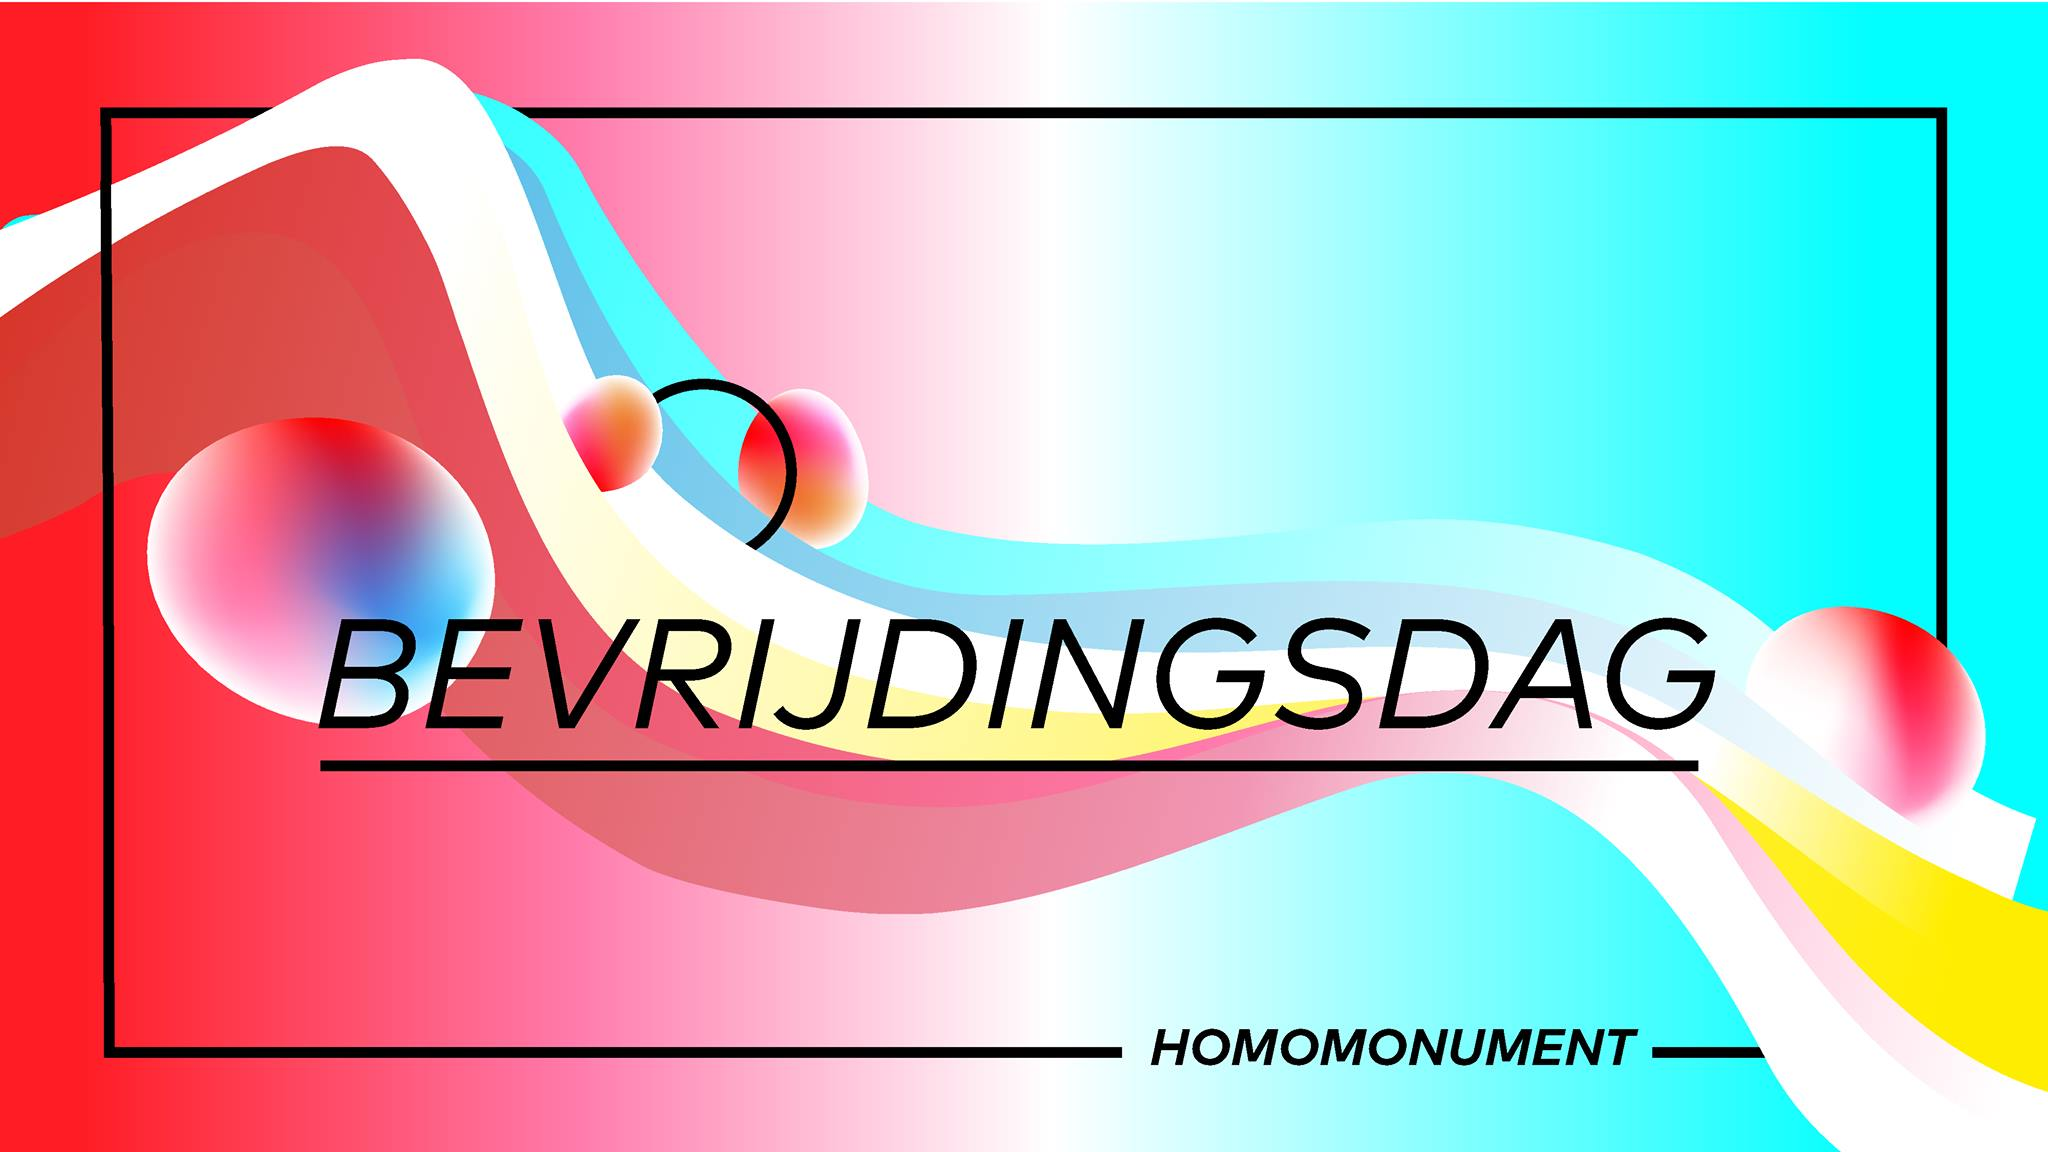 Bevrijdingsdag / Liberation Day - Homomonument Amsterdam - LGBT+ Outdoor Street Party